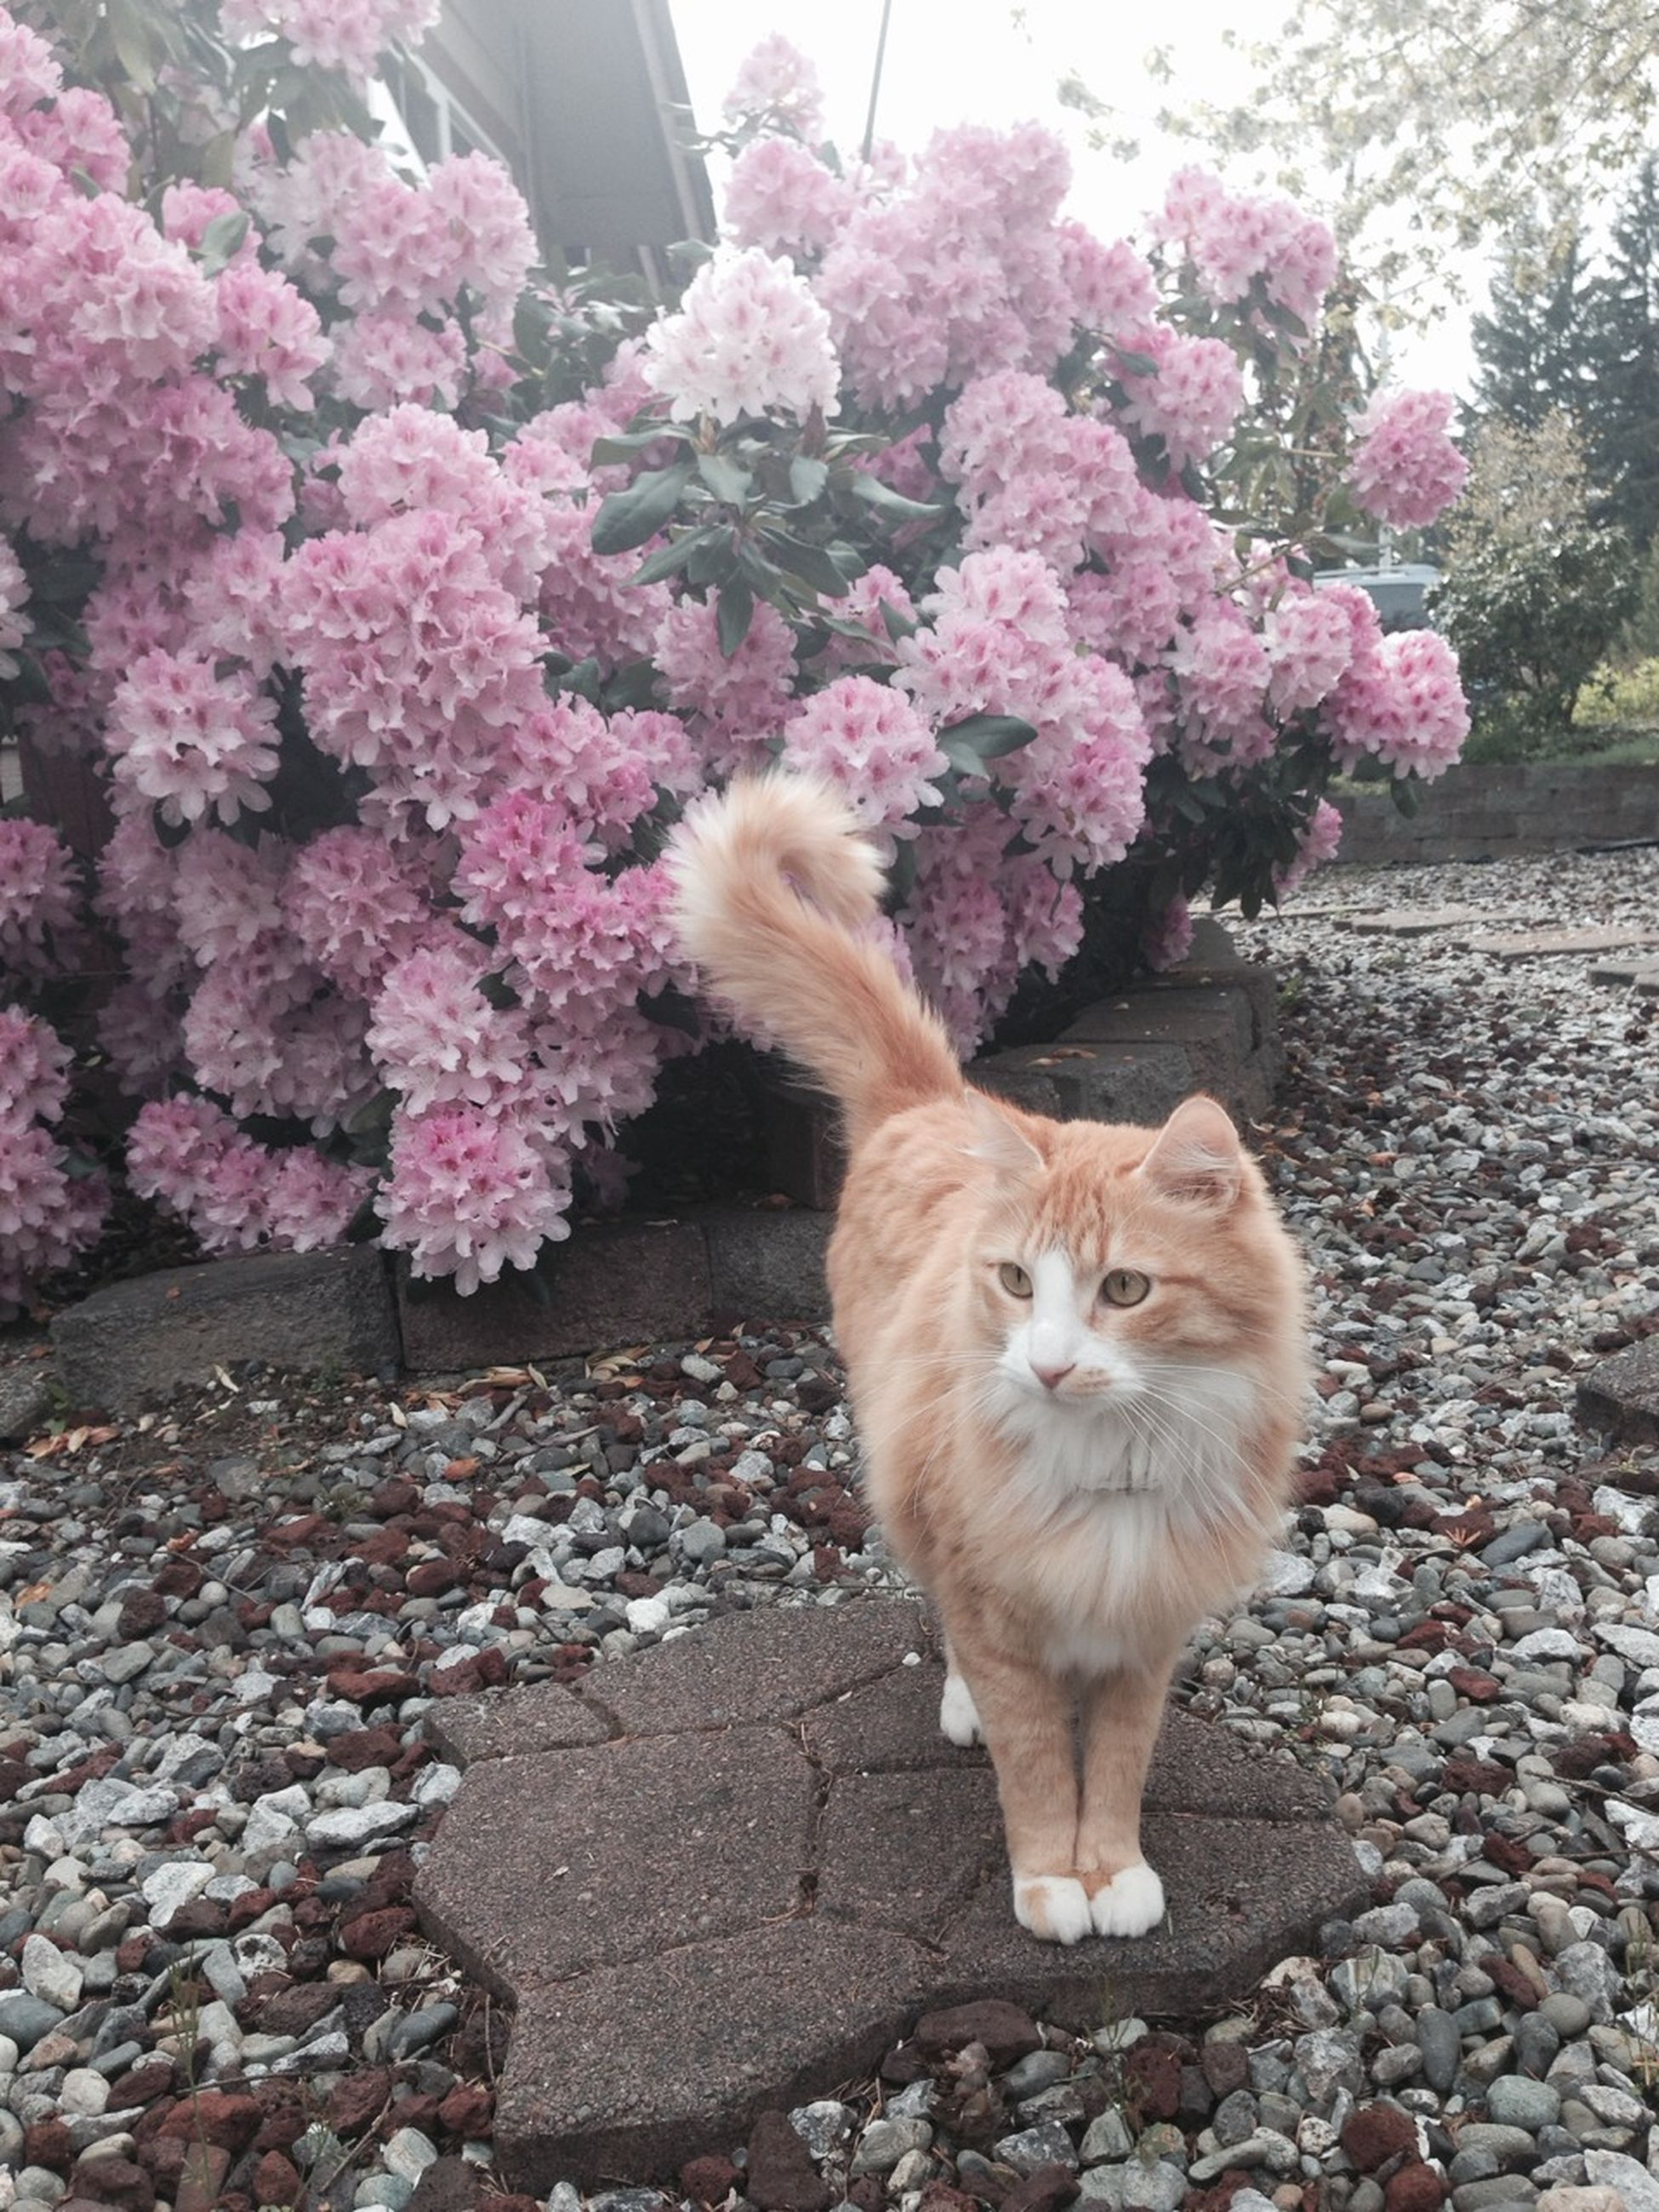 flower, one animal, animal themes, pets, domestic animals, domestic cat, mammal, cat, plant, growth, nature, pink color, outdoors, day, beauty in nature, leaf, fragility, dog, freshness, no people